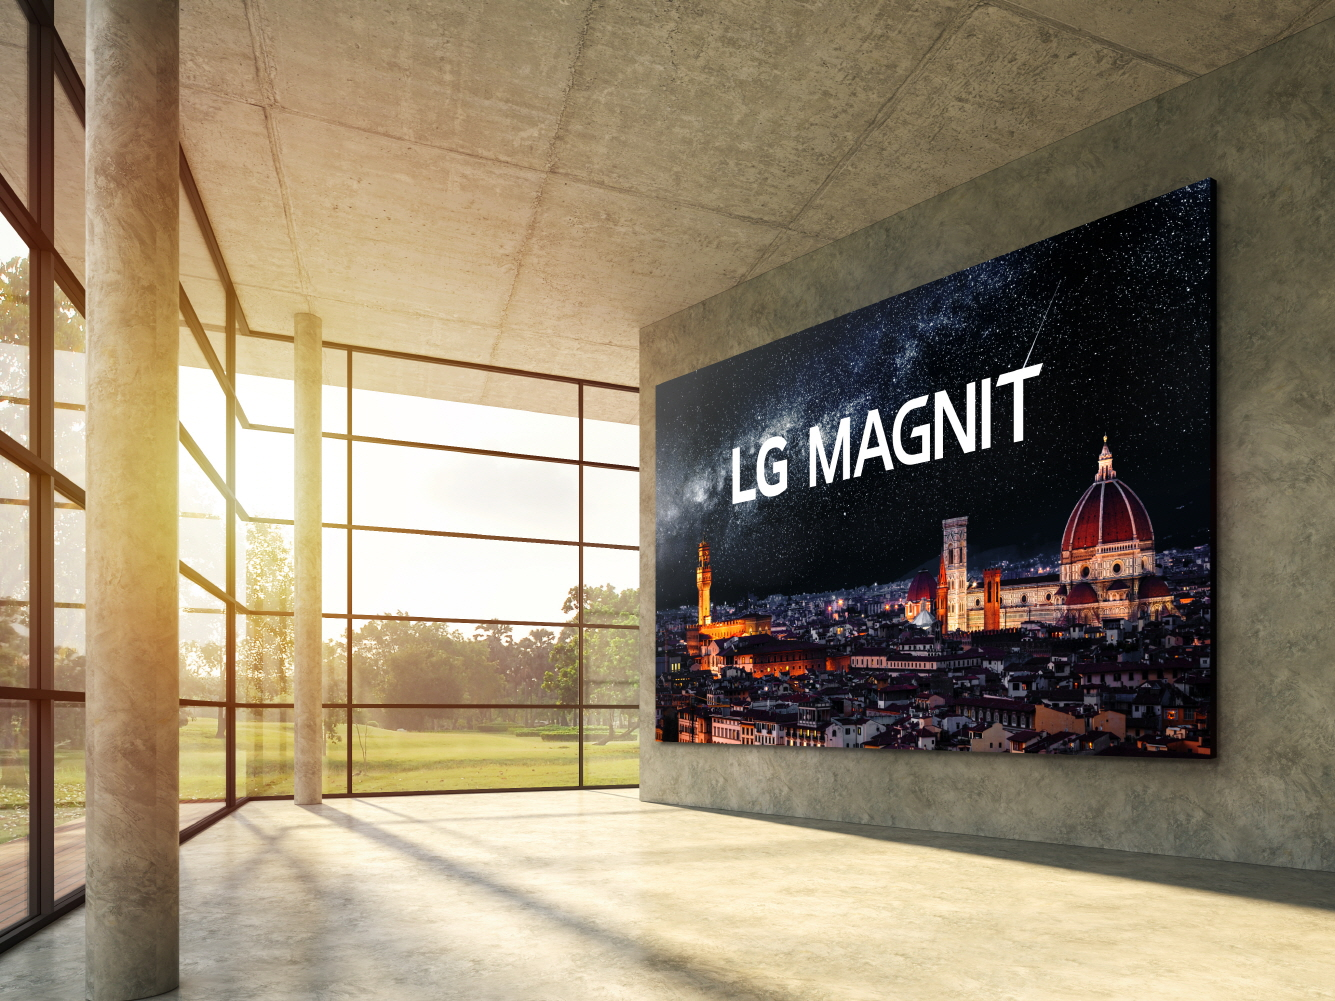 A modern interior space boasting natural light from its expansive windows has LG MAGNIT hanging on the wall, the new Micro LED signage solution displaying a beautiful, crystal-clear night scene of Italian city Florence